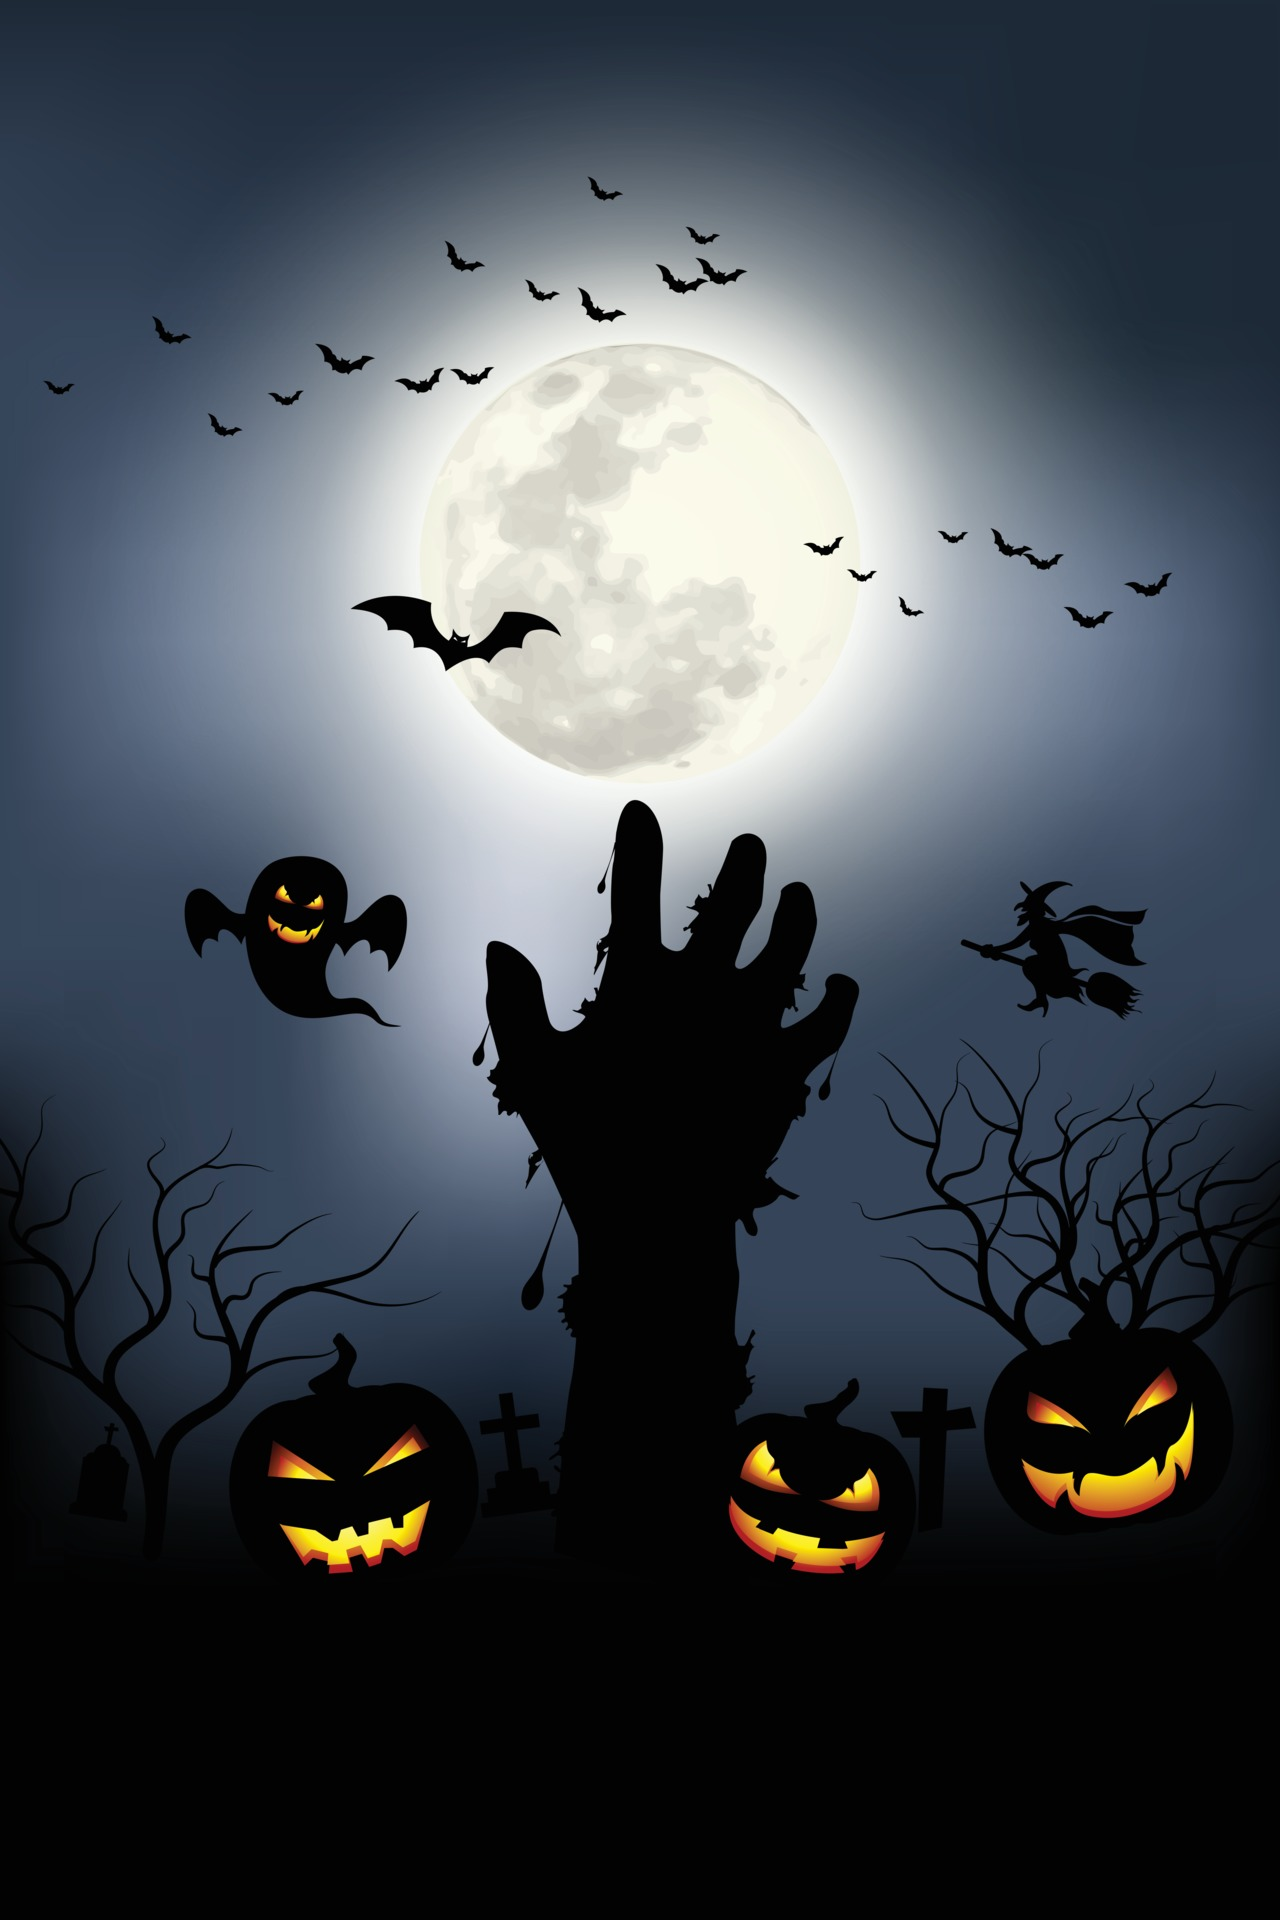 Get inspired for a new halloween costume party or find just the right cover or accompanying photo for one of your projects. Zombie Hands Rising In Dark Halloween Night Vector Illustrator 3307433 Vector Art At Vecteezy